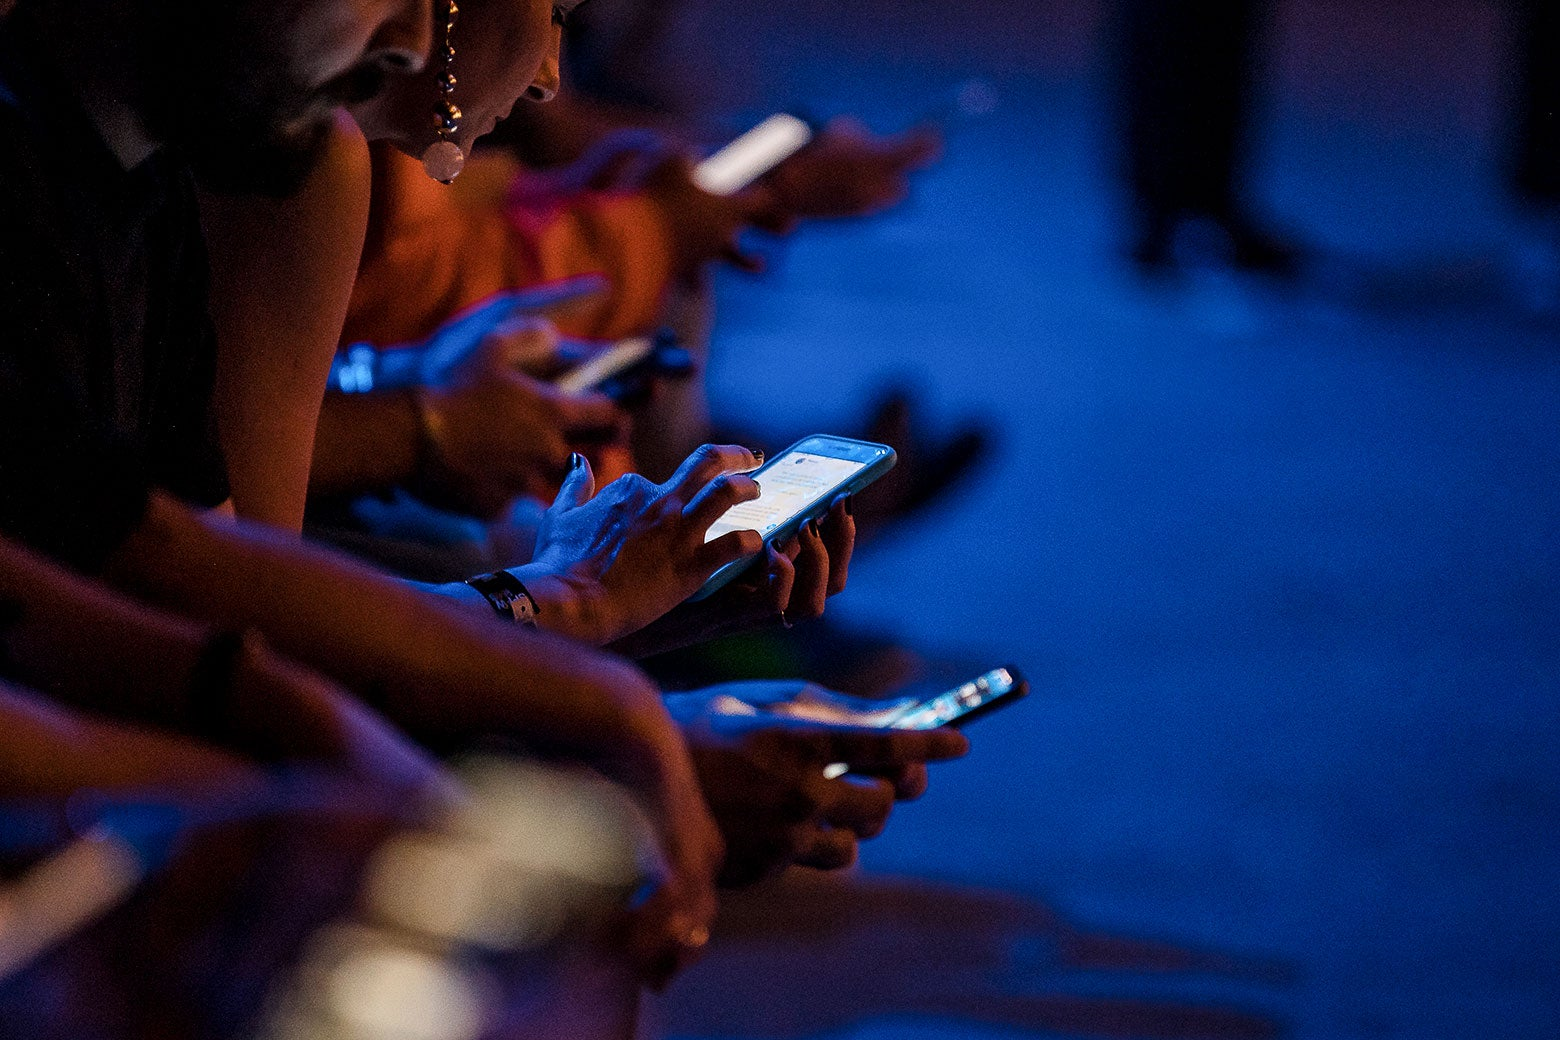 Audience members with cellphones out at Sao Paulo Fashion Week N46 SPFW Winter 2019